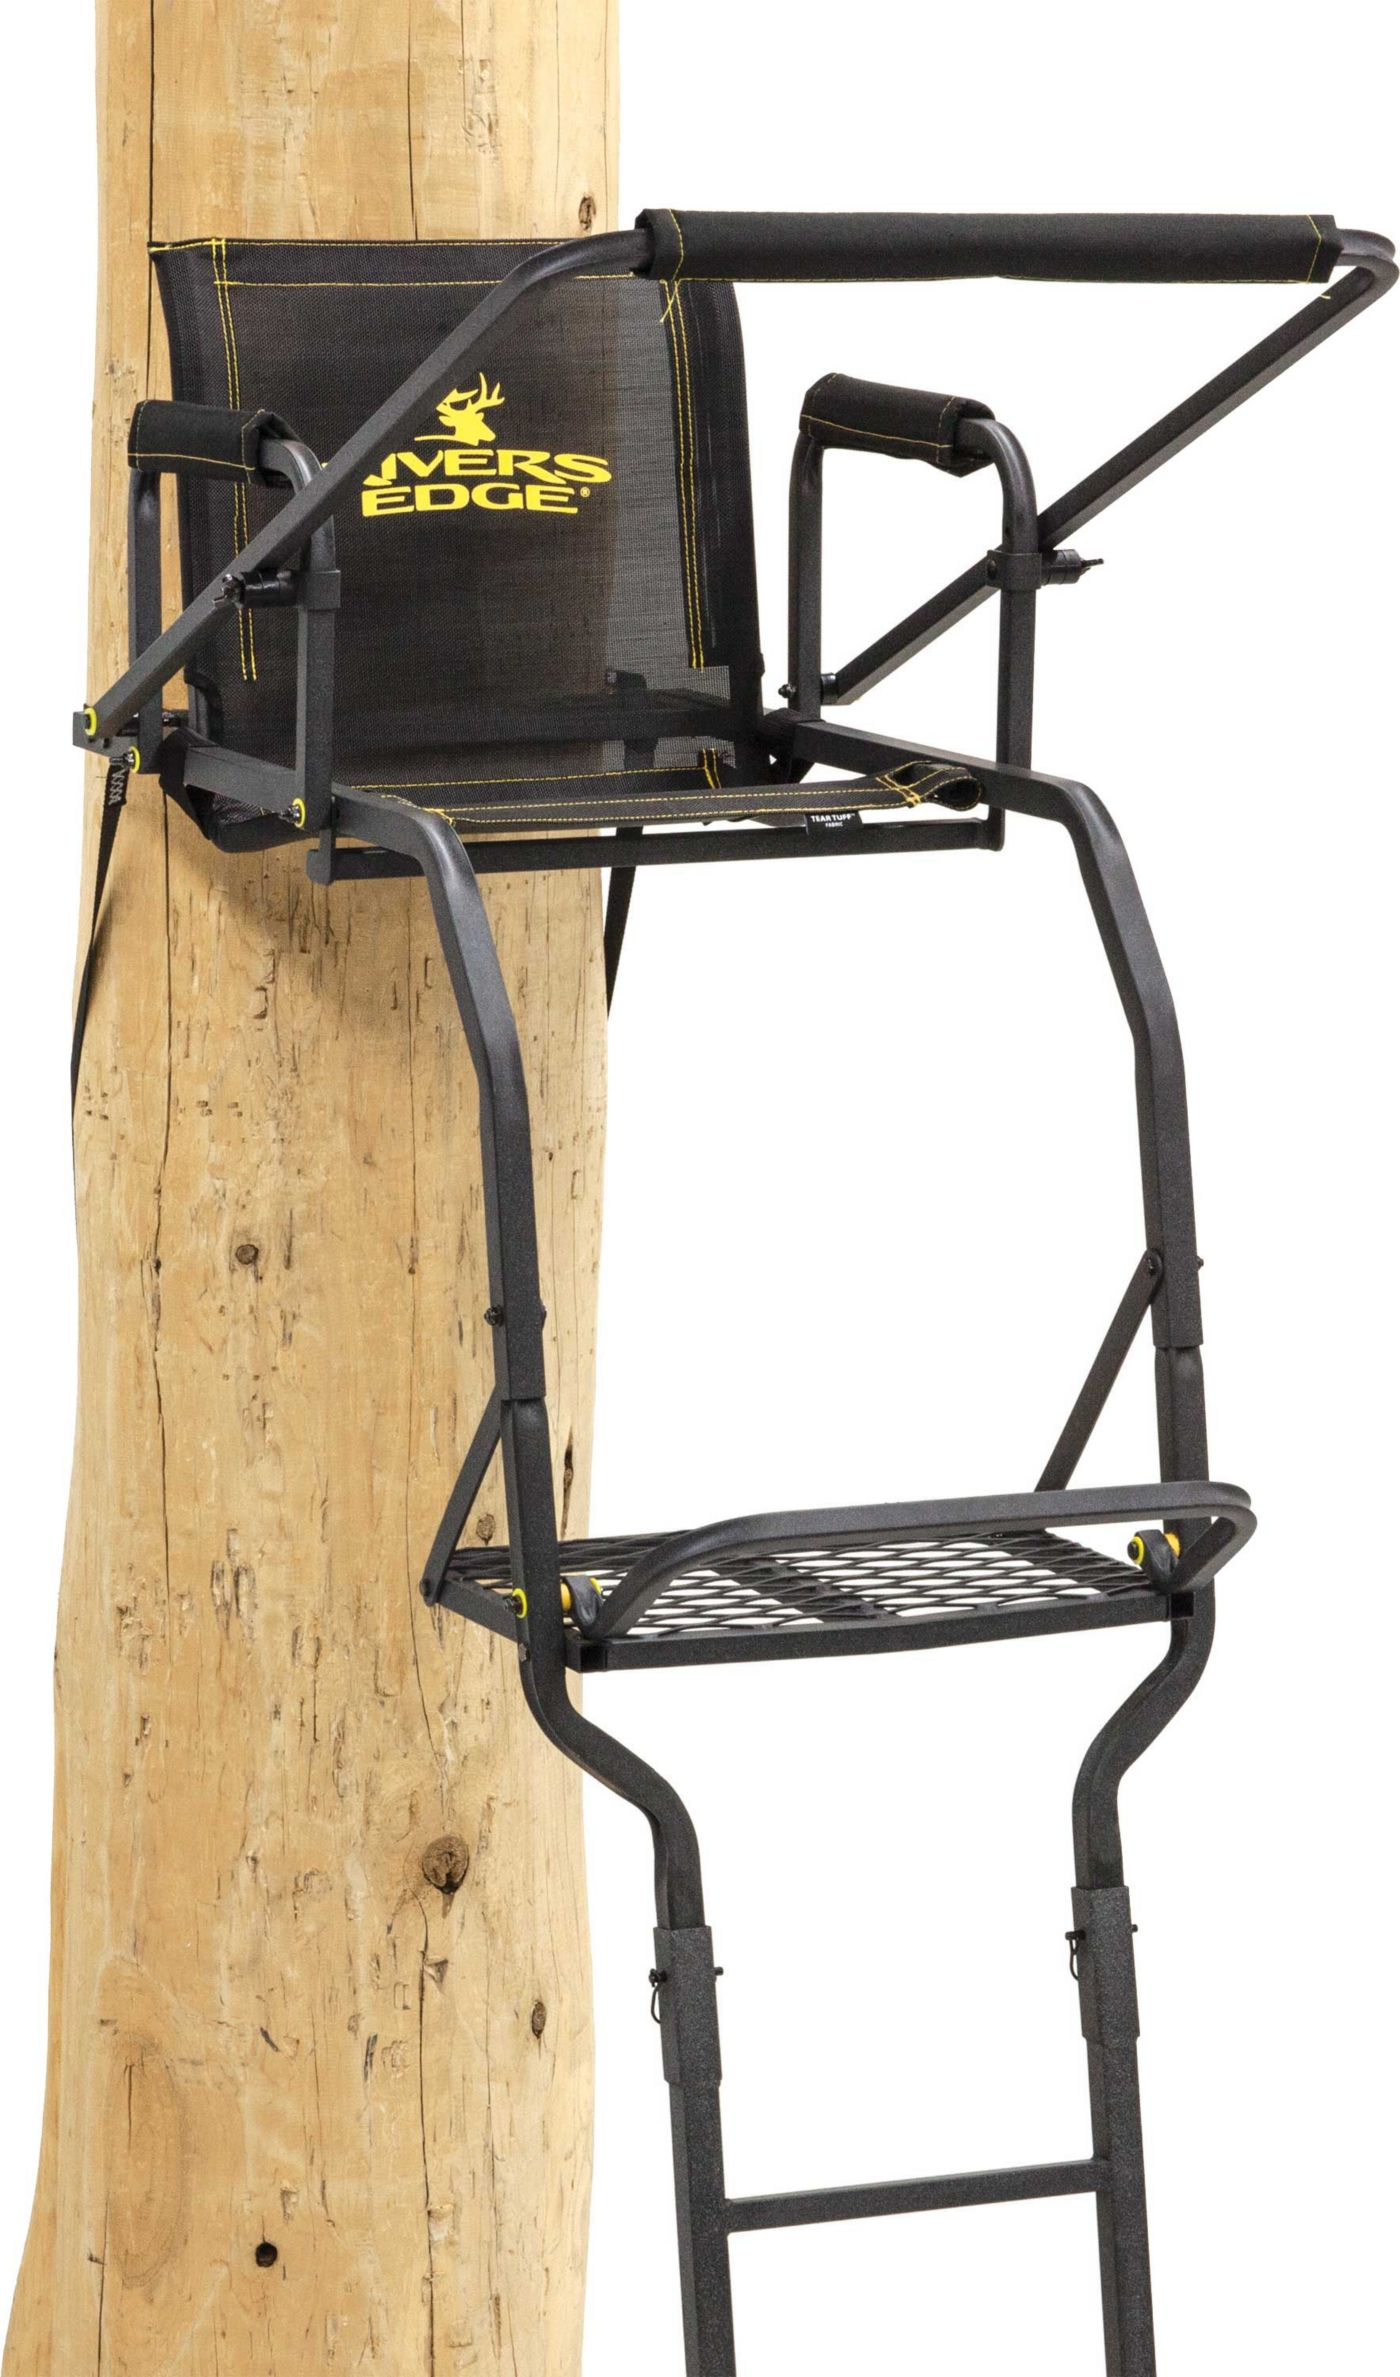 Rivers Edge Deluxe XT 1-Man 15' Ladder Stand